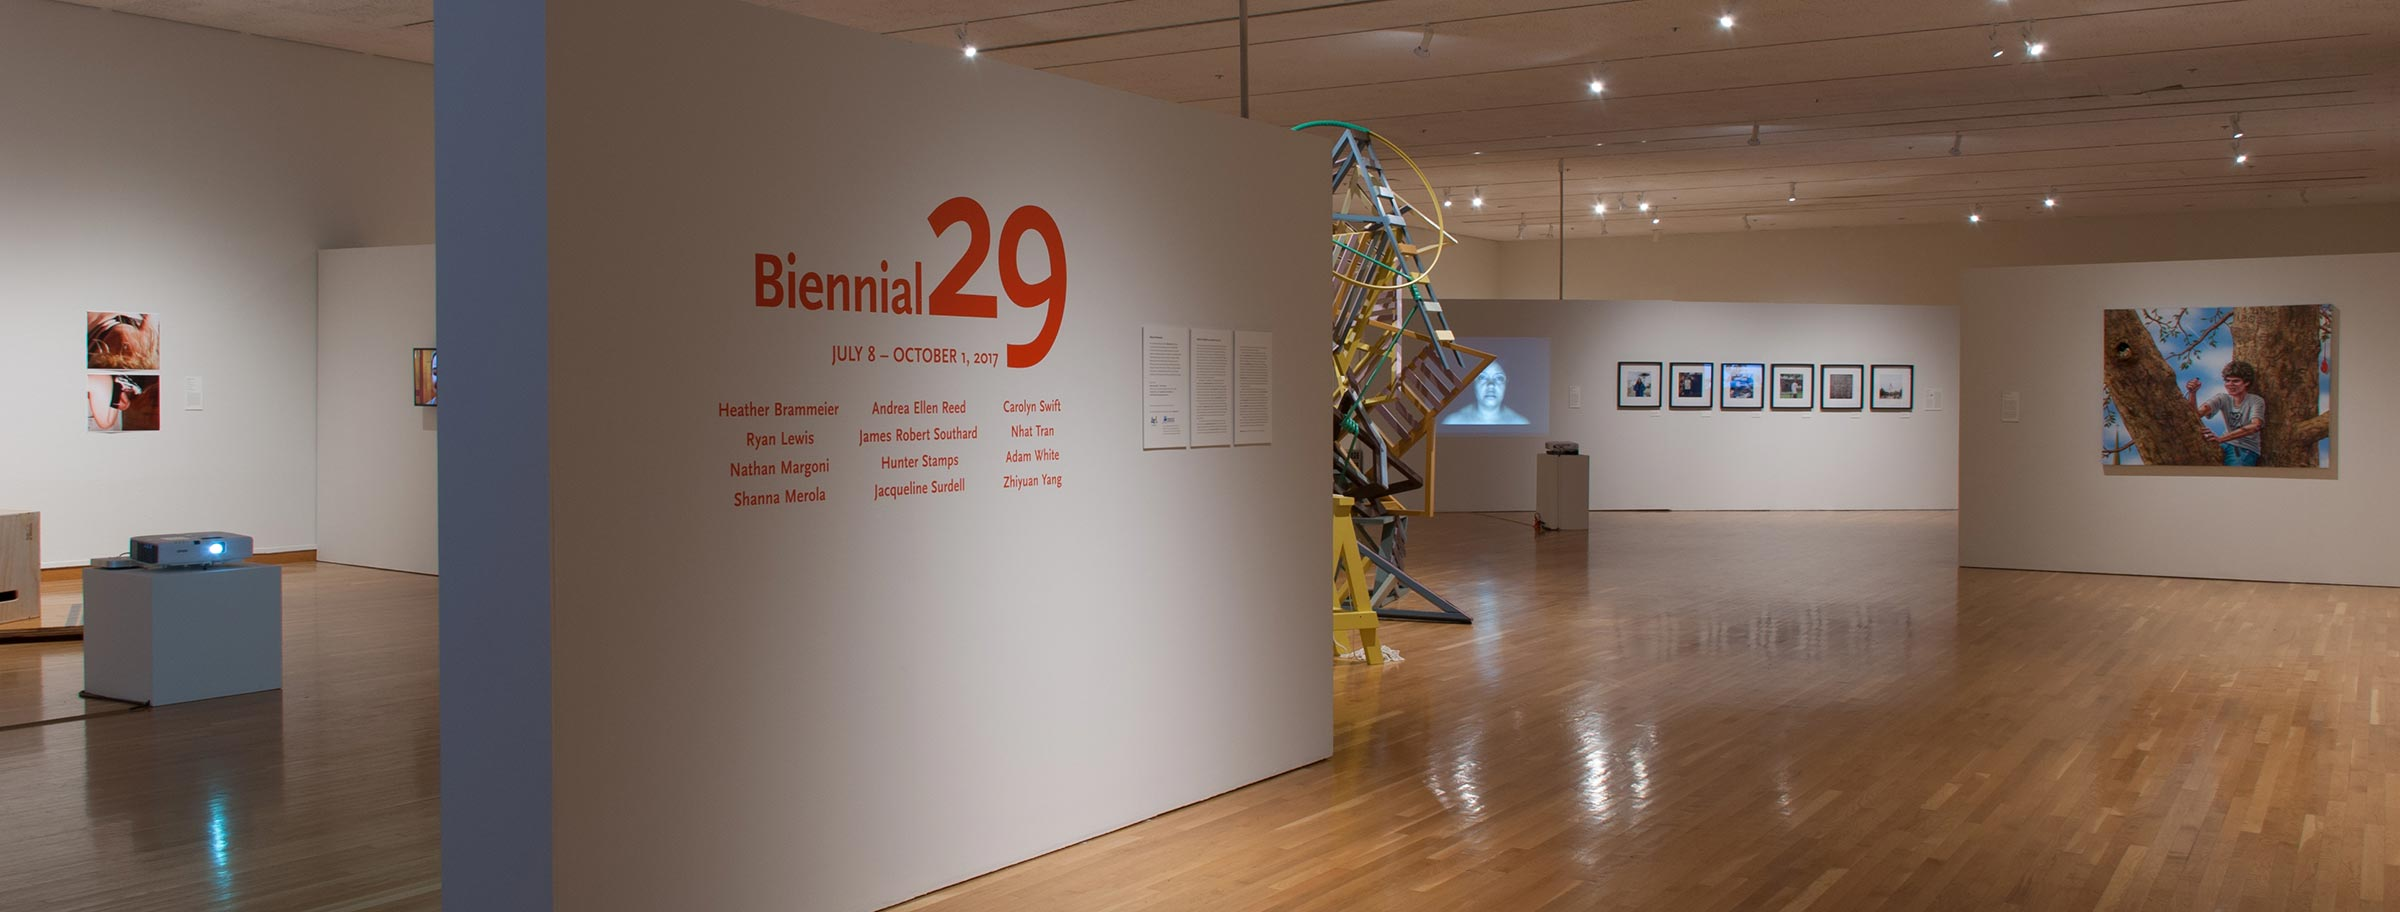 biennial-29-installation-view